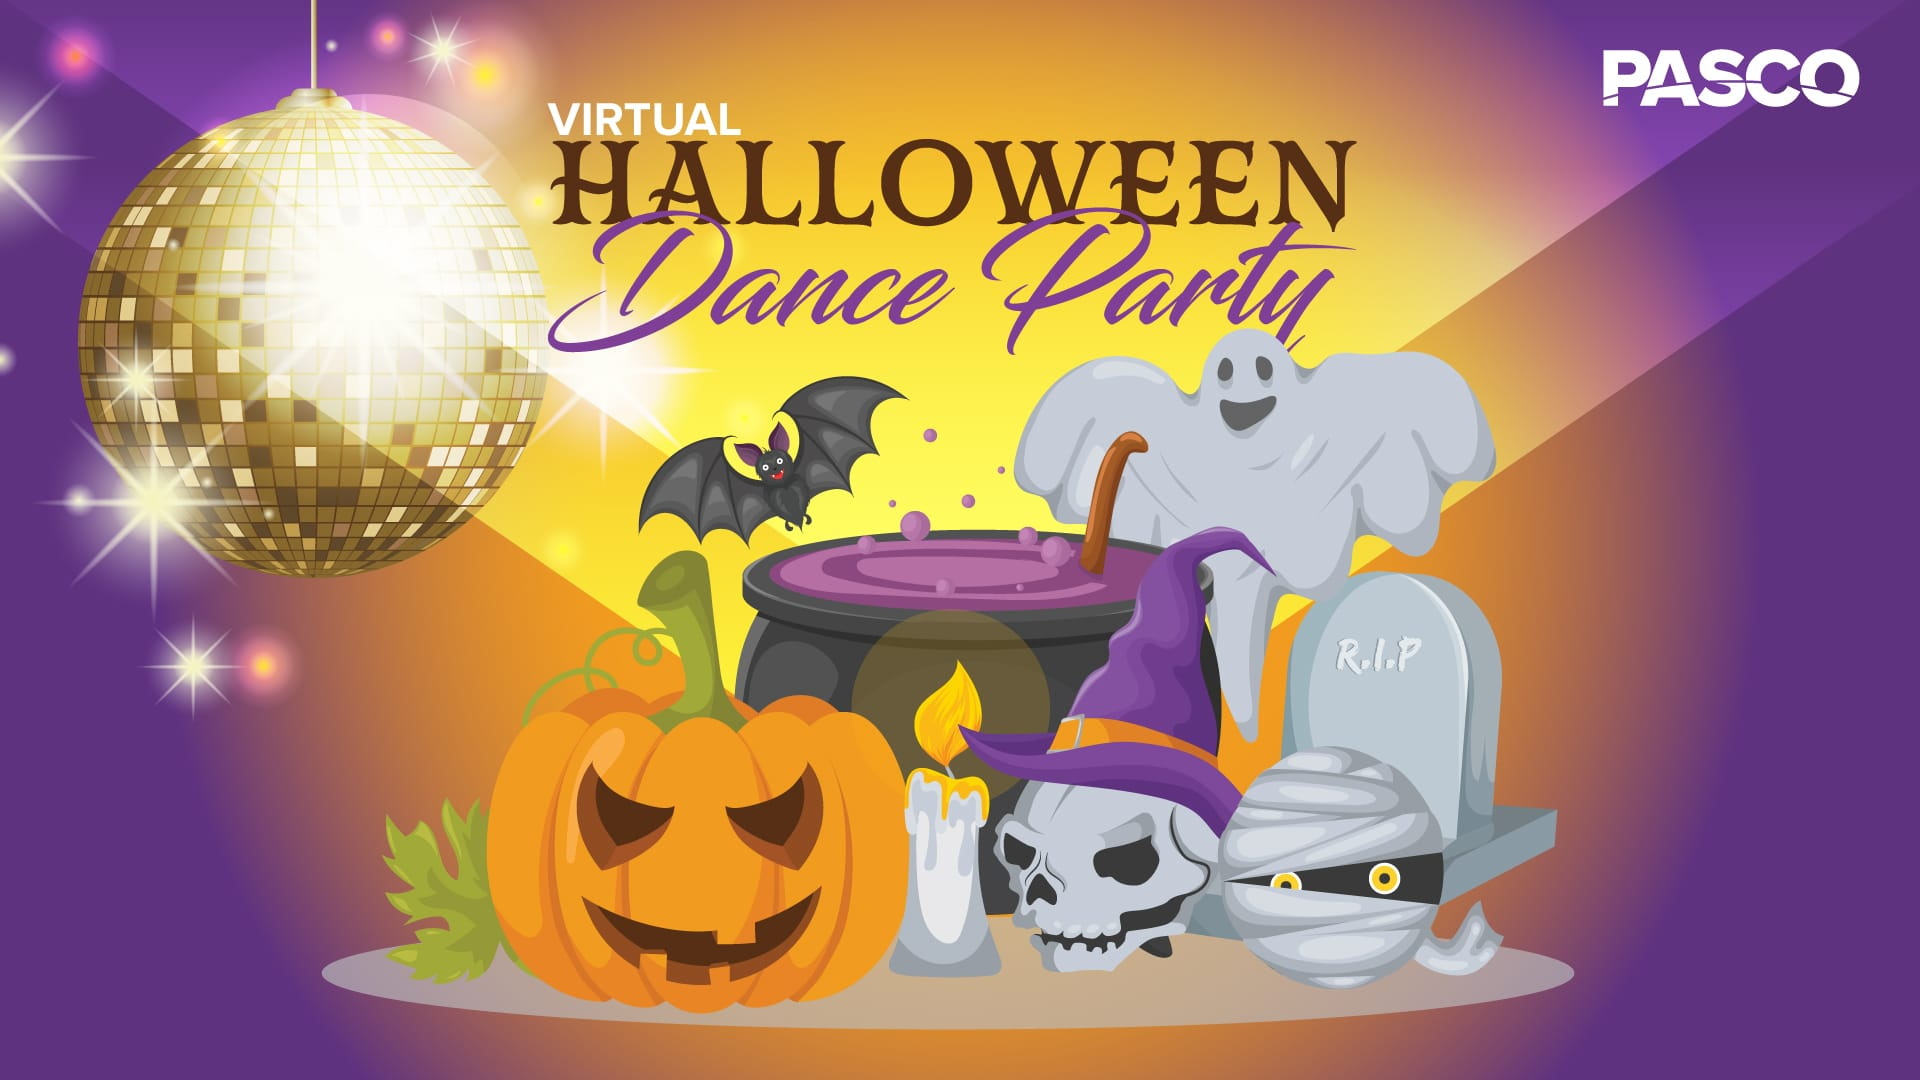 PASCO Virtual Halloween Dance